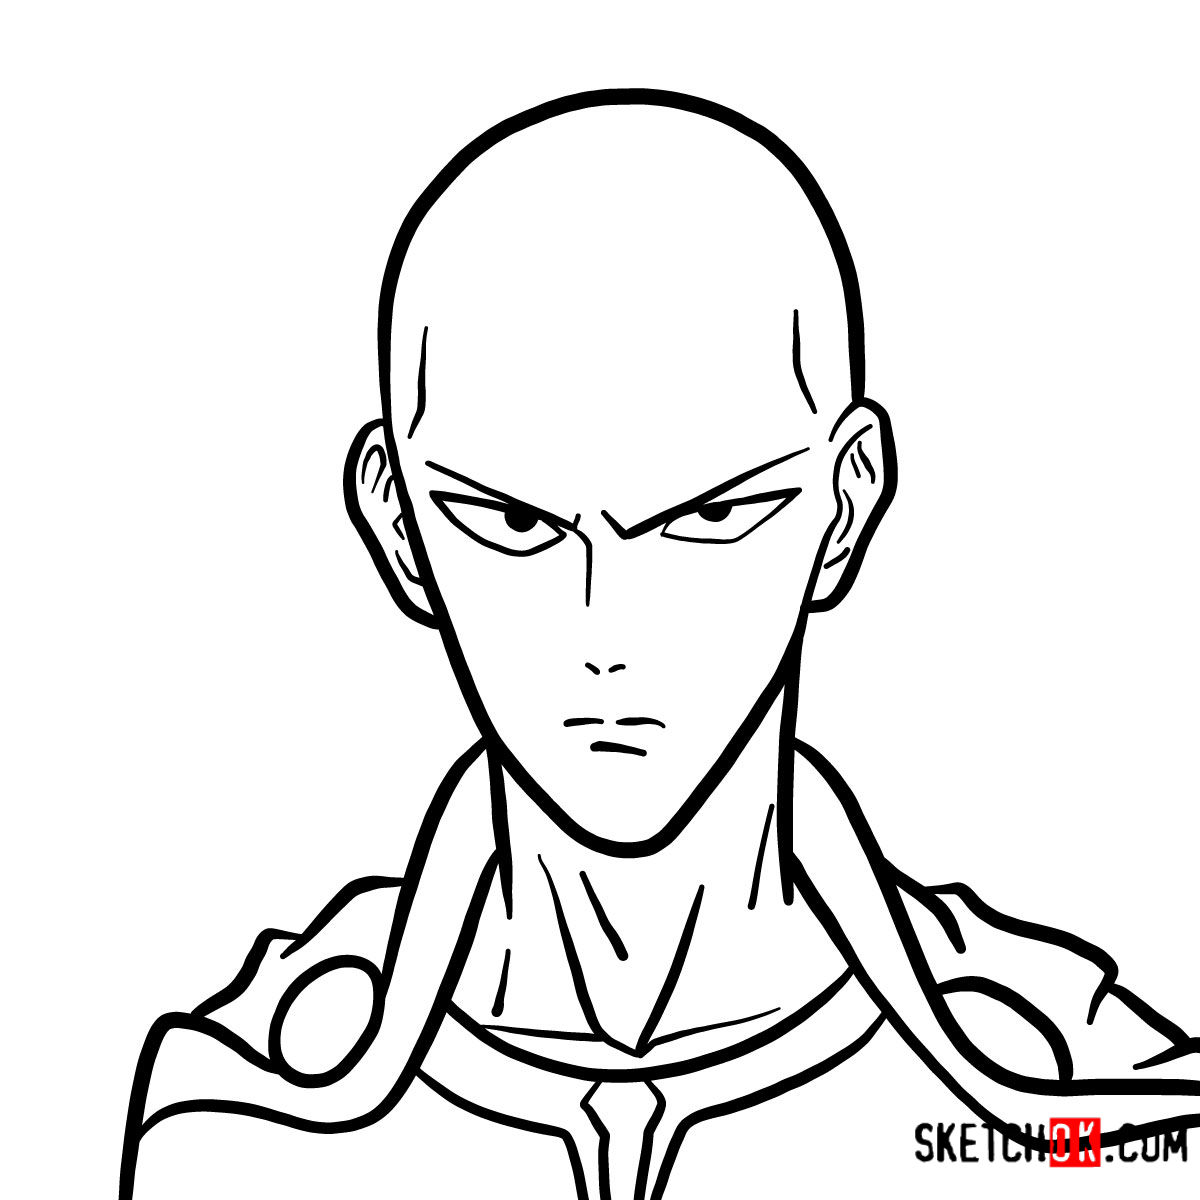 How to draw Saitama's face | One-Punch Man